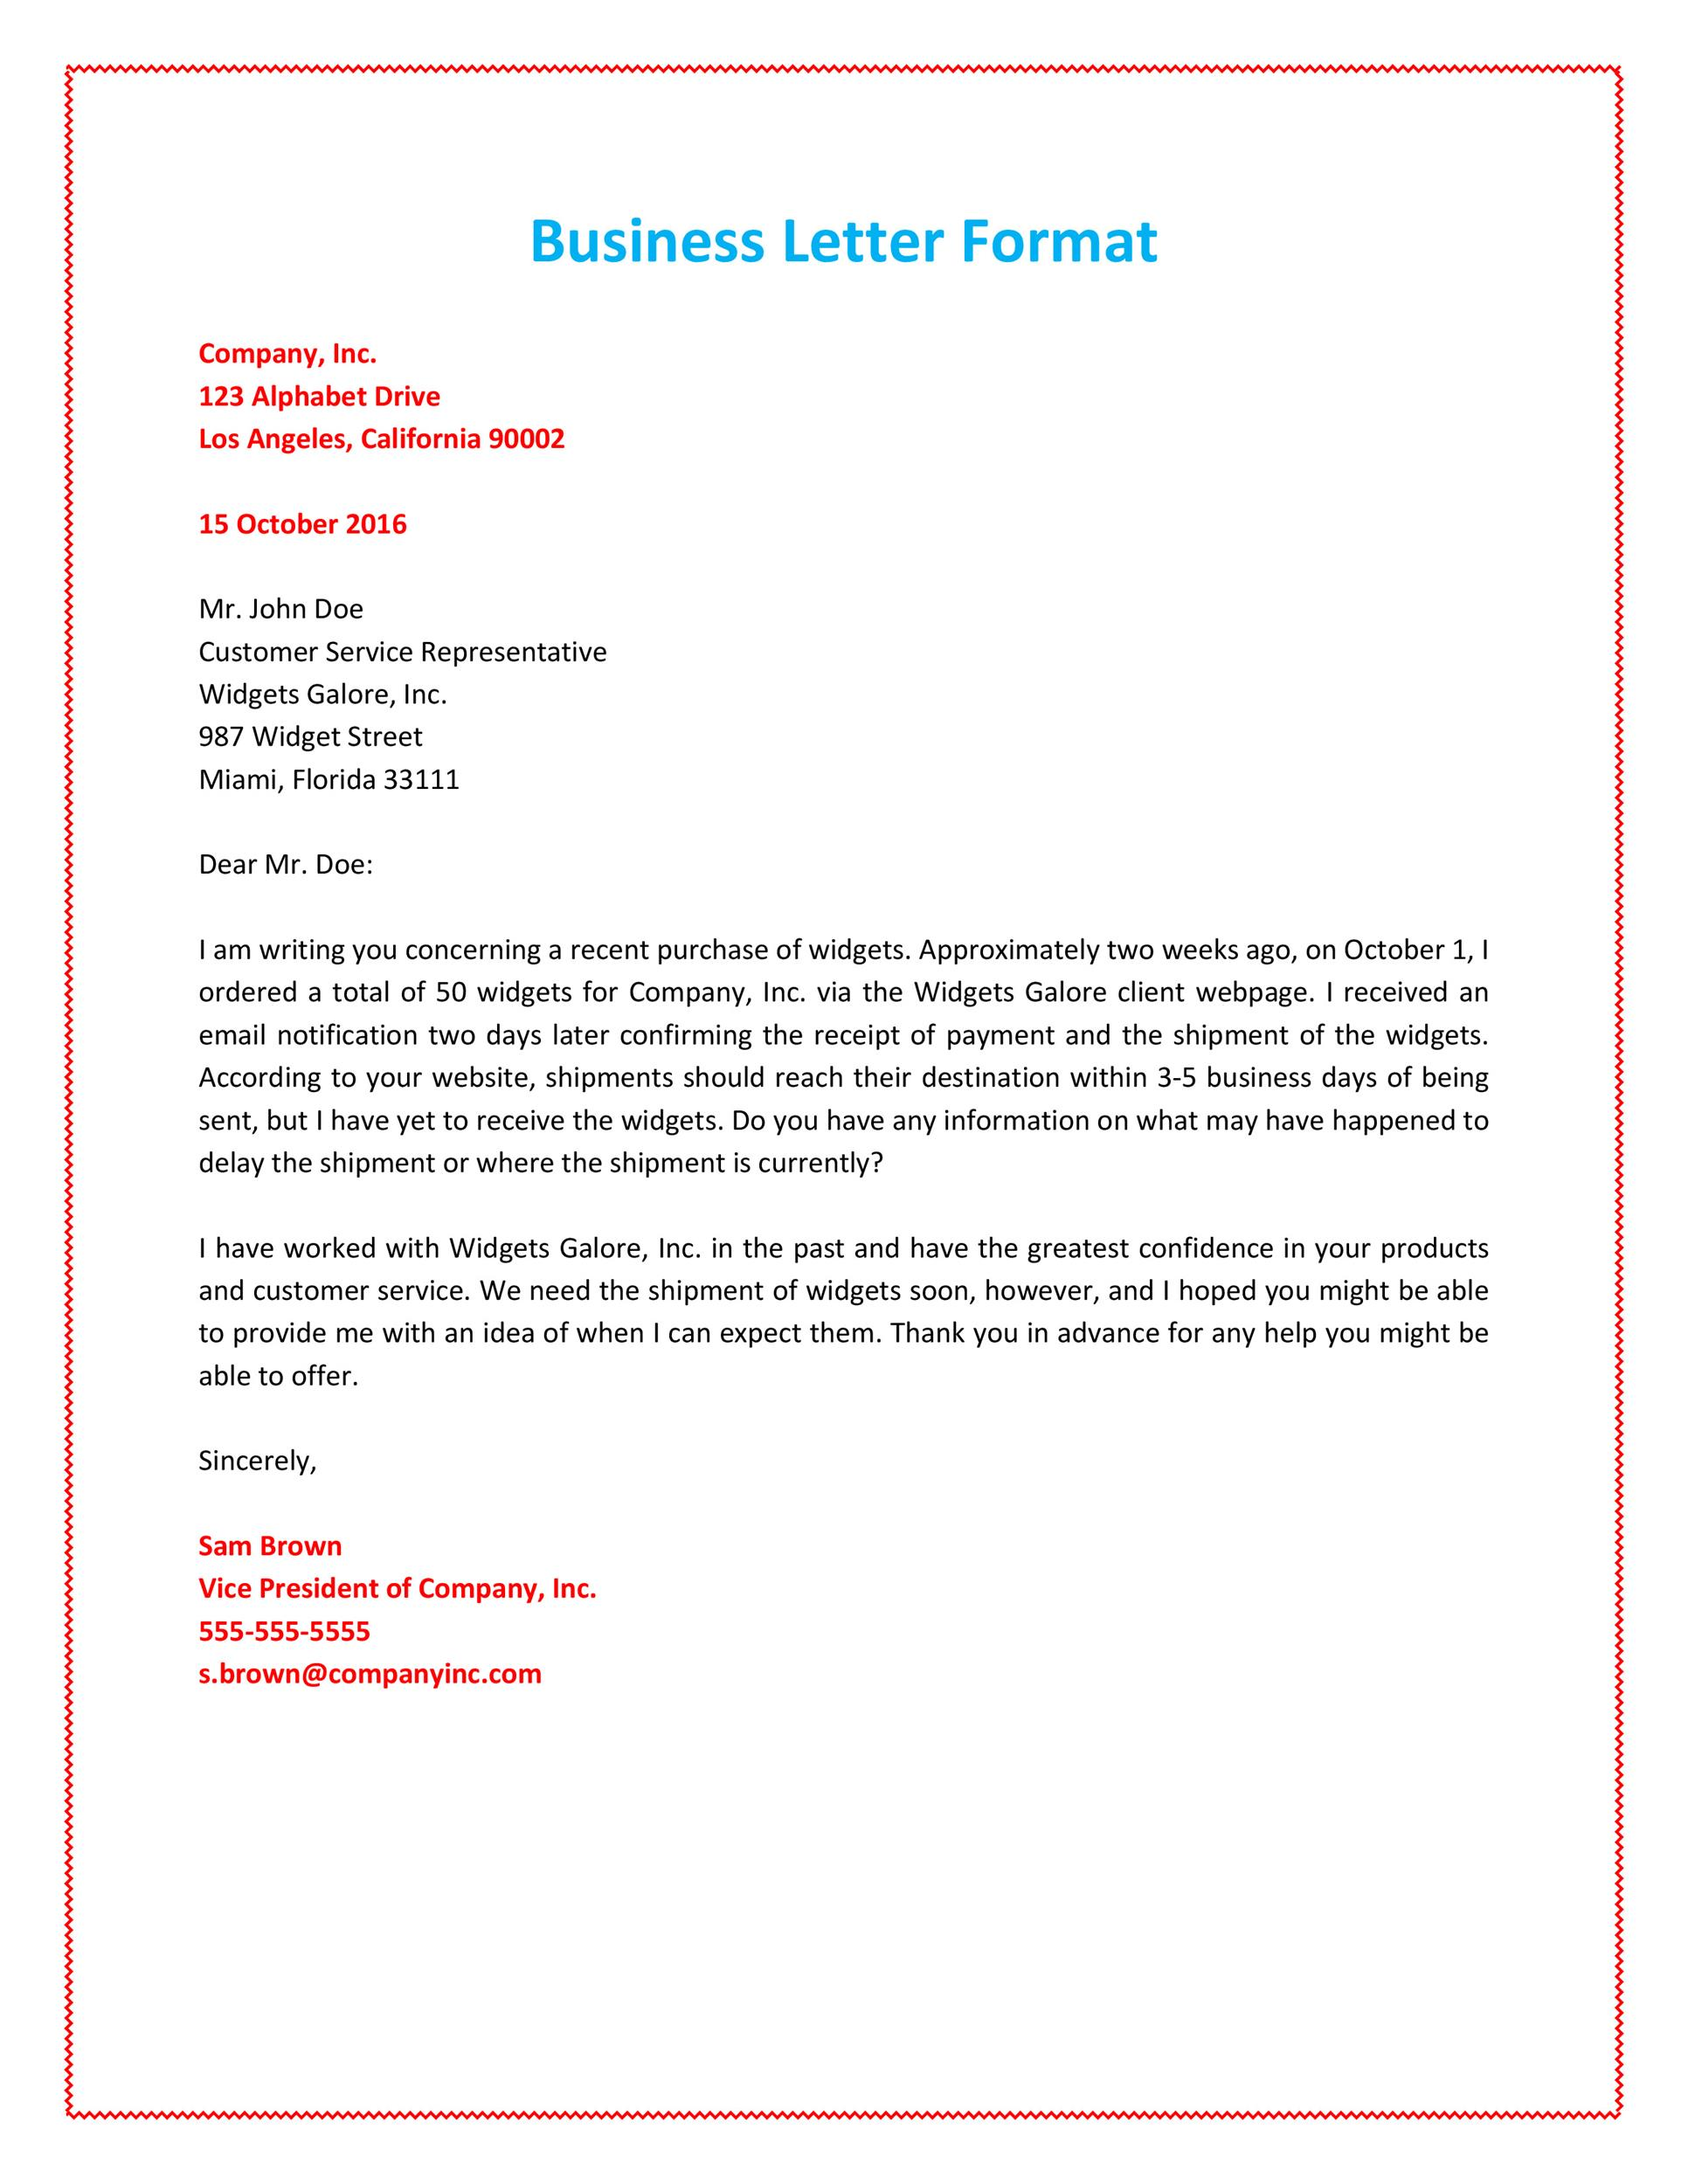 Business letters ukrandiffusion 35 formal business letter format templates examples template lab friedricerecipe